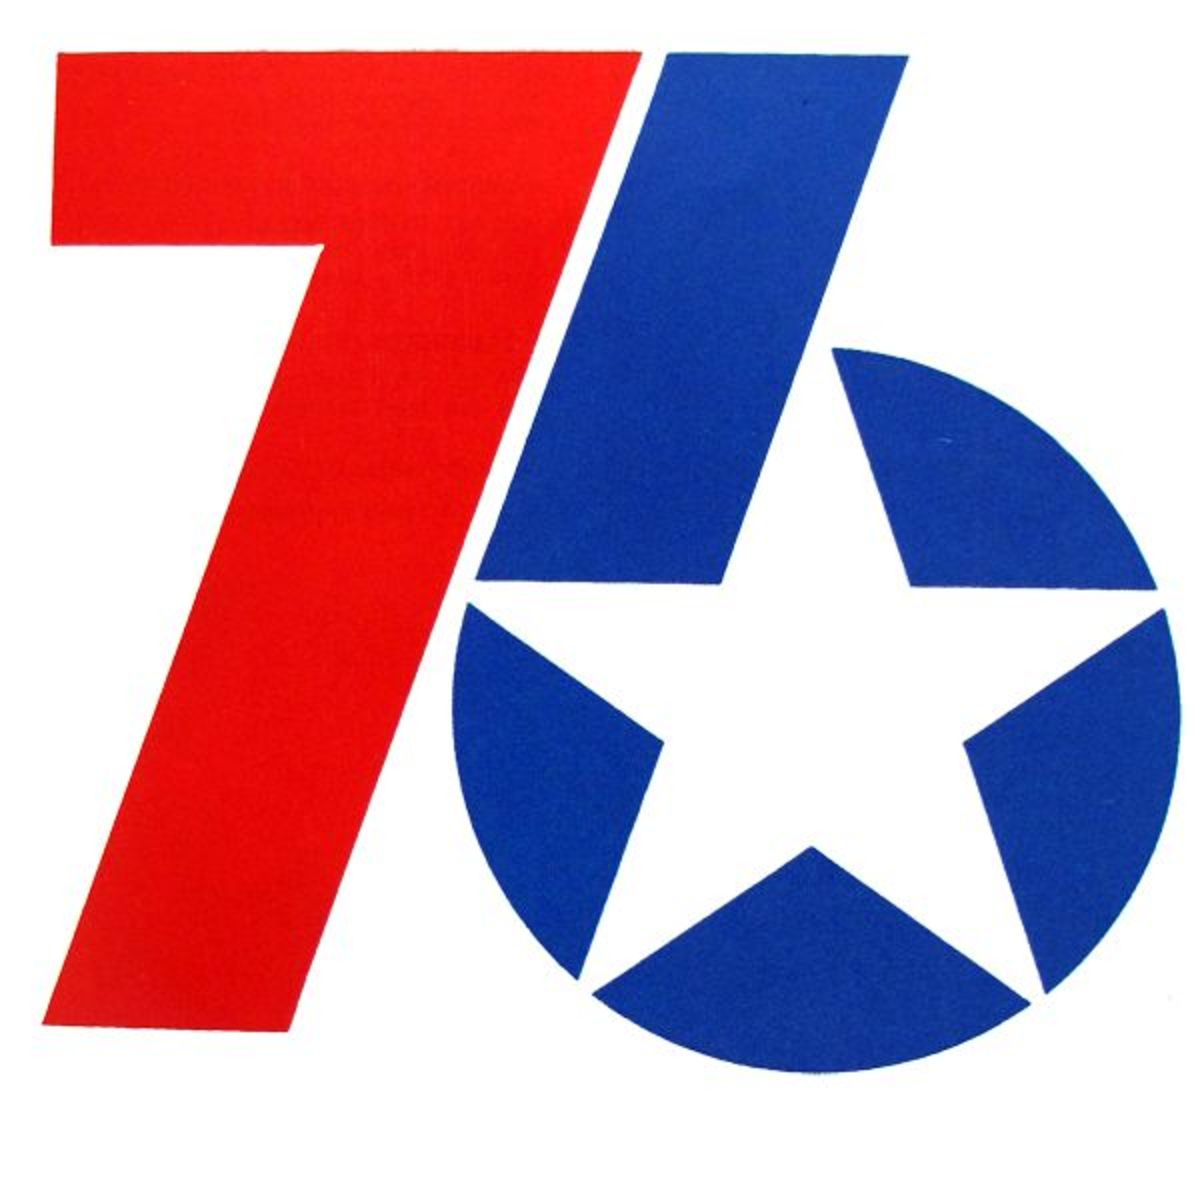 In 1976, the United States celebrated the Bicentennial.